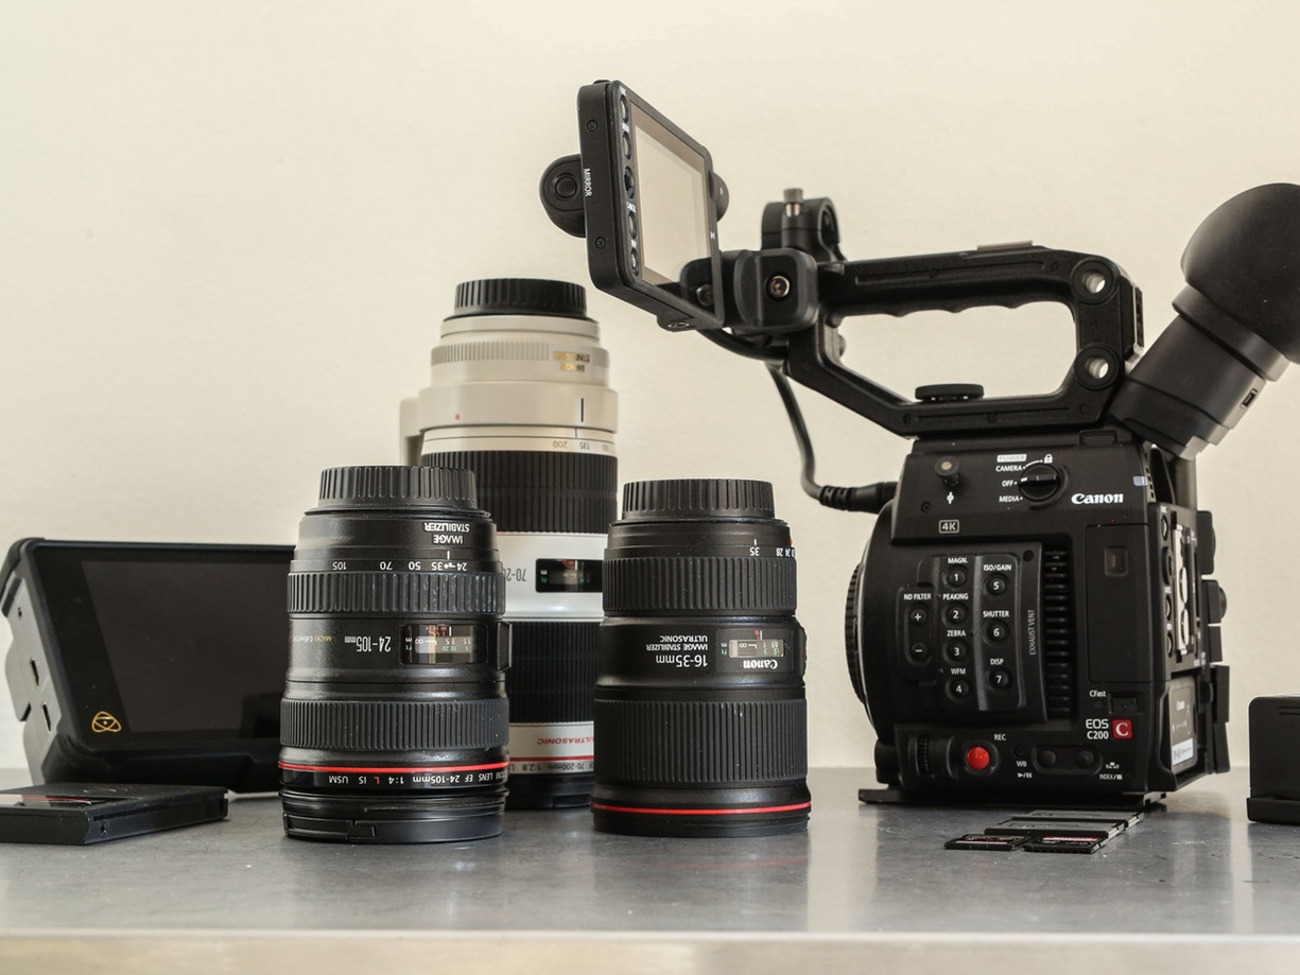 Canon C200  2 x L series lenses  2 5tb = 5 5 hours Cfast Raw Recording   Rode mic  5 batteries = 19 hours recording